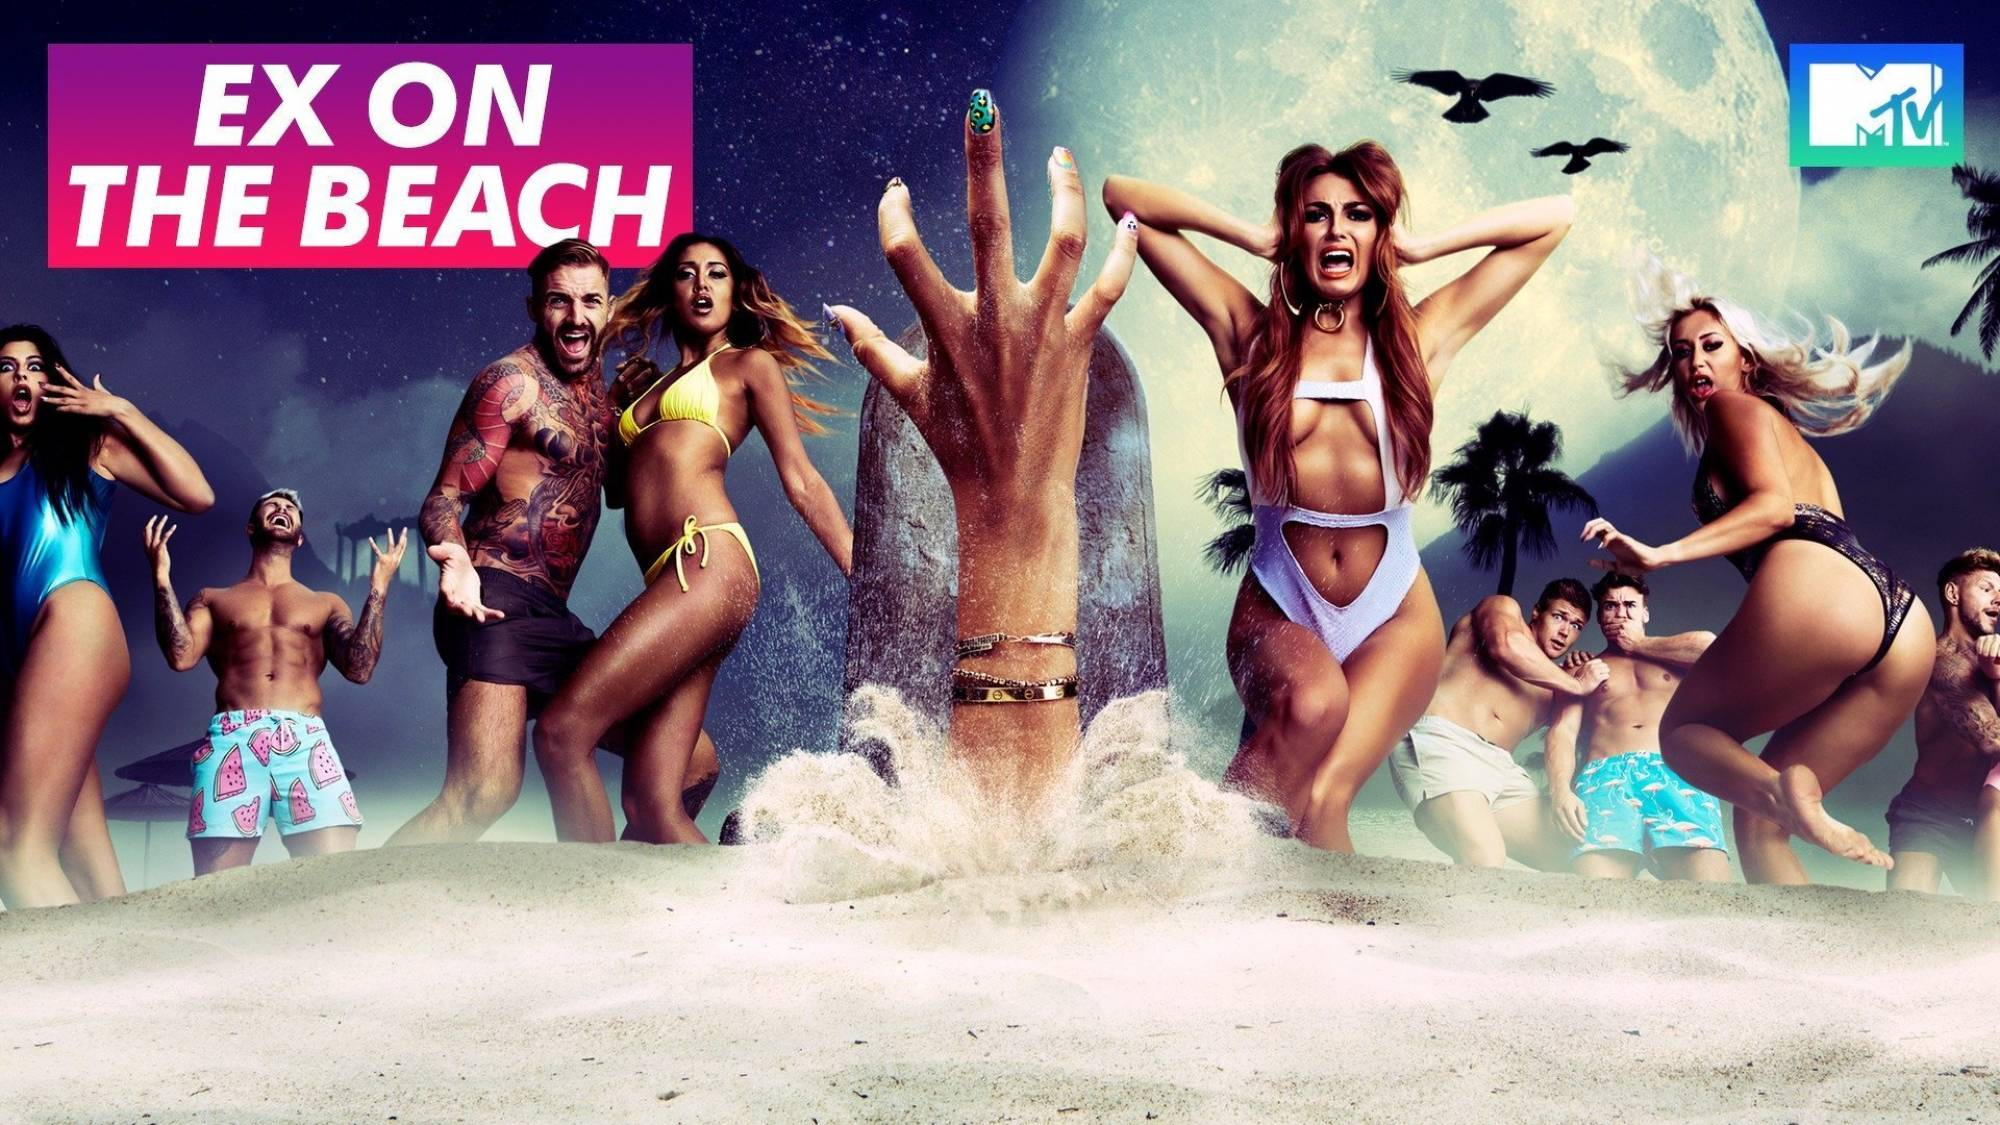 Ex on the beach | Se TV-serier gratis online | Viafree